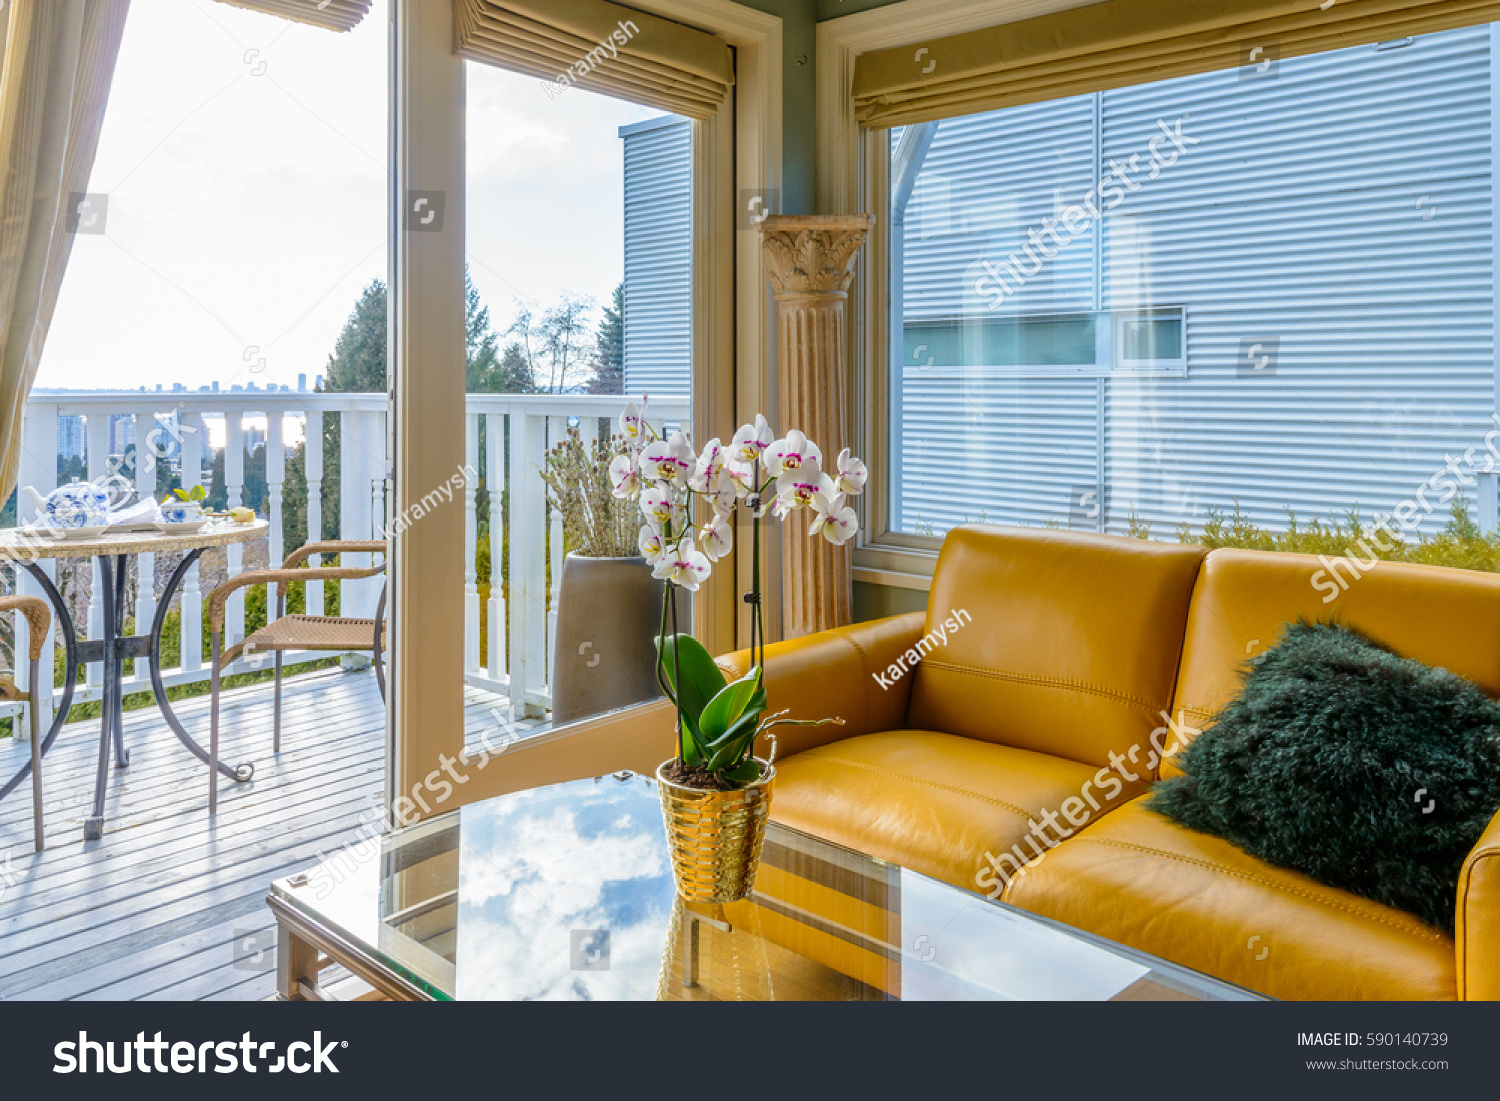 Interior design luxury living room balcony stock photo for Luxury balcony design